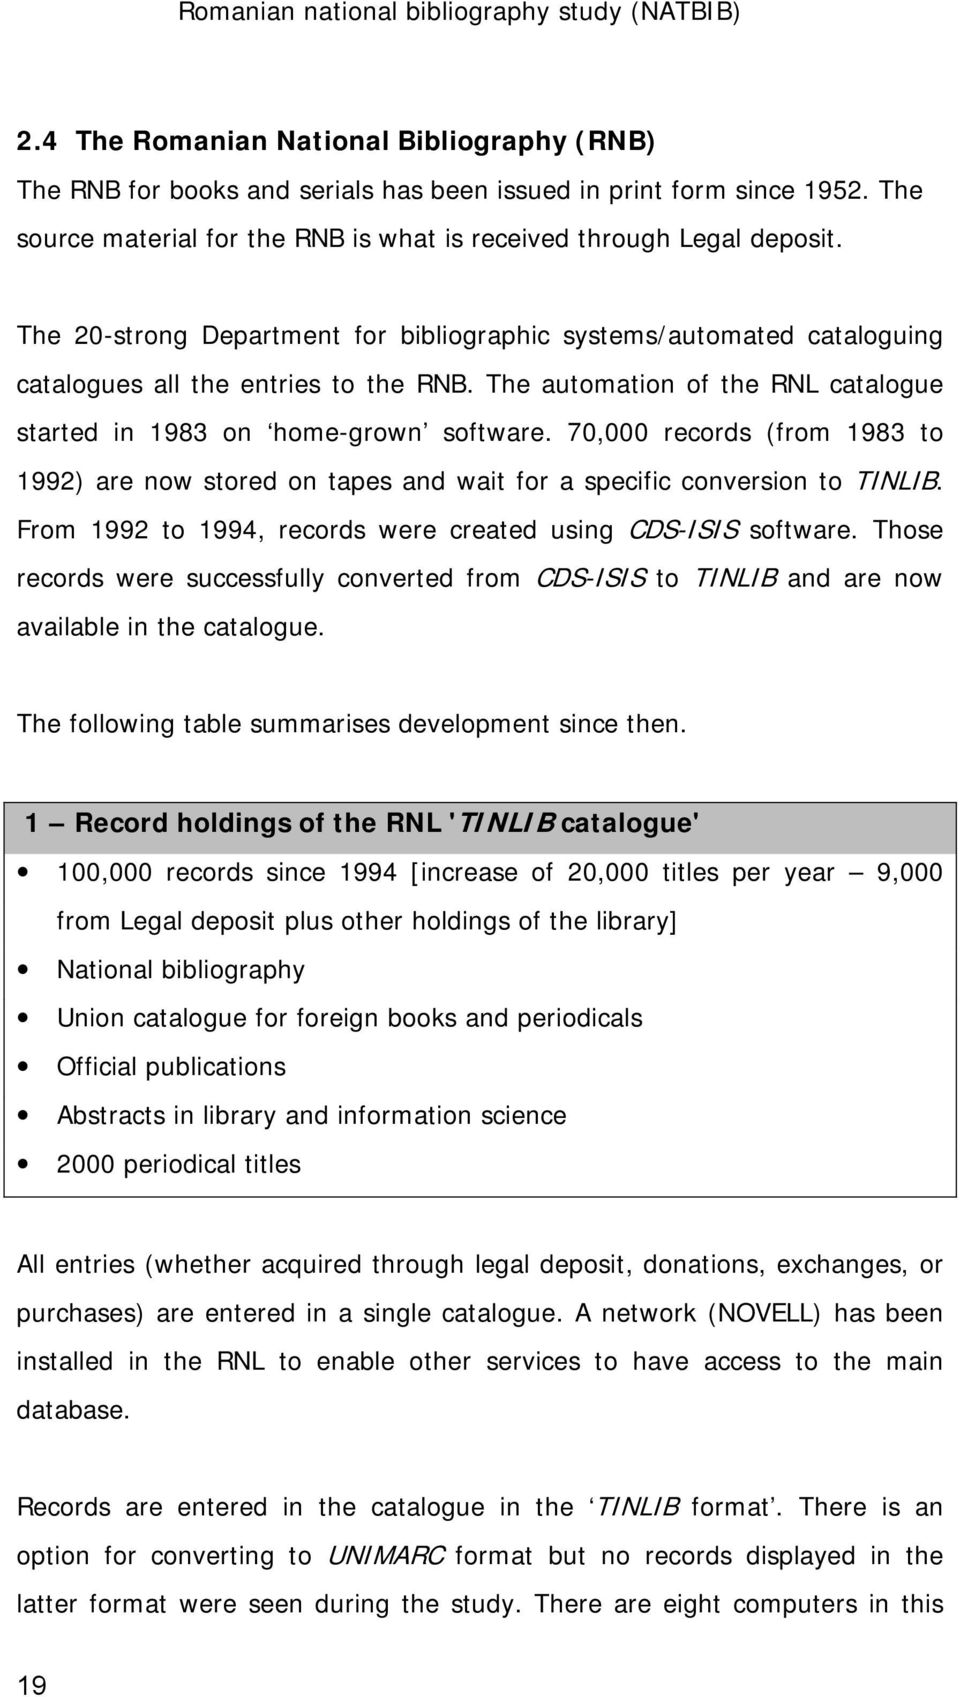 70,000 records (from 1983 to 1992) are now stored on tapes and wait for a specific conversion to TINLIB. From 1992 to 1994, records were created using CDS-ISIS software.